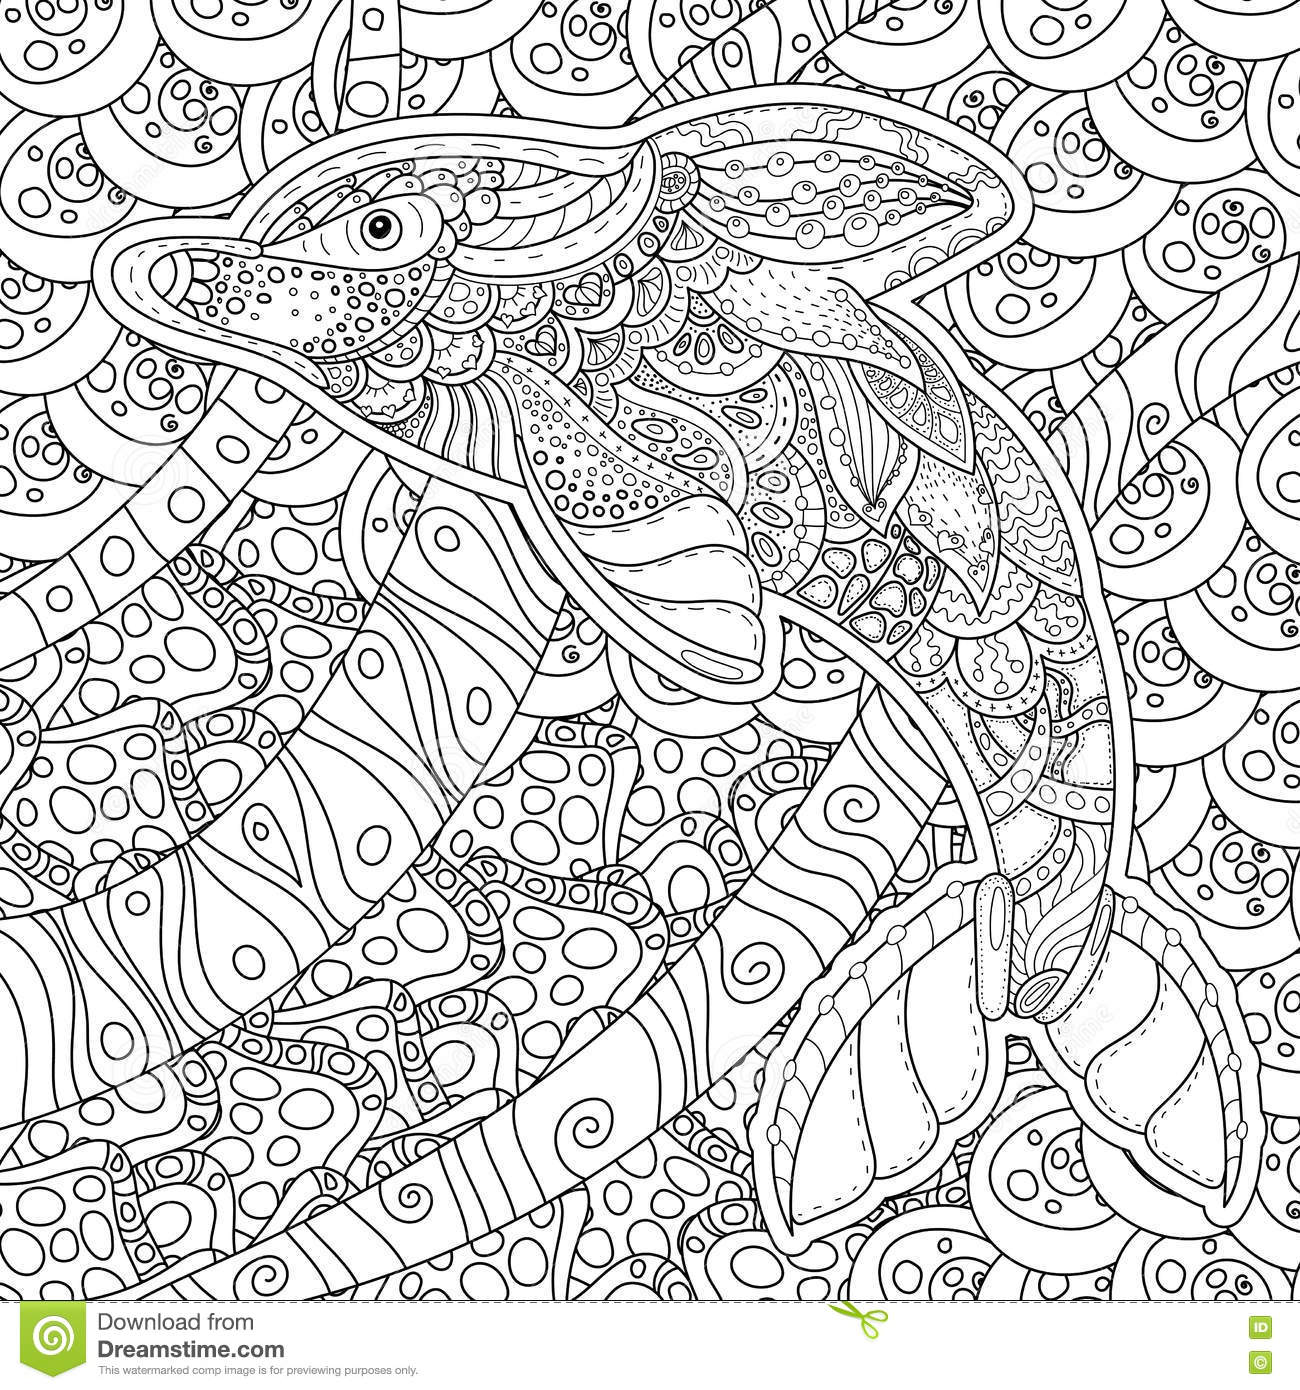 zentangle stylized dolphin anti stress coloring page stock